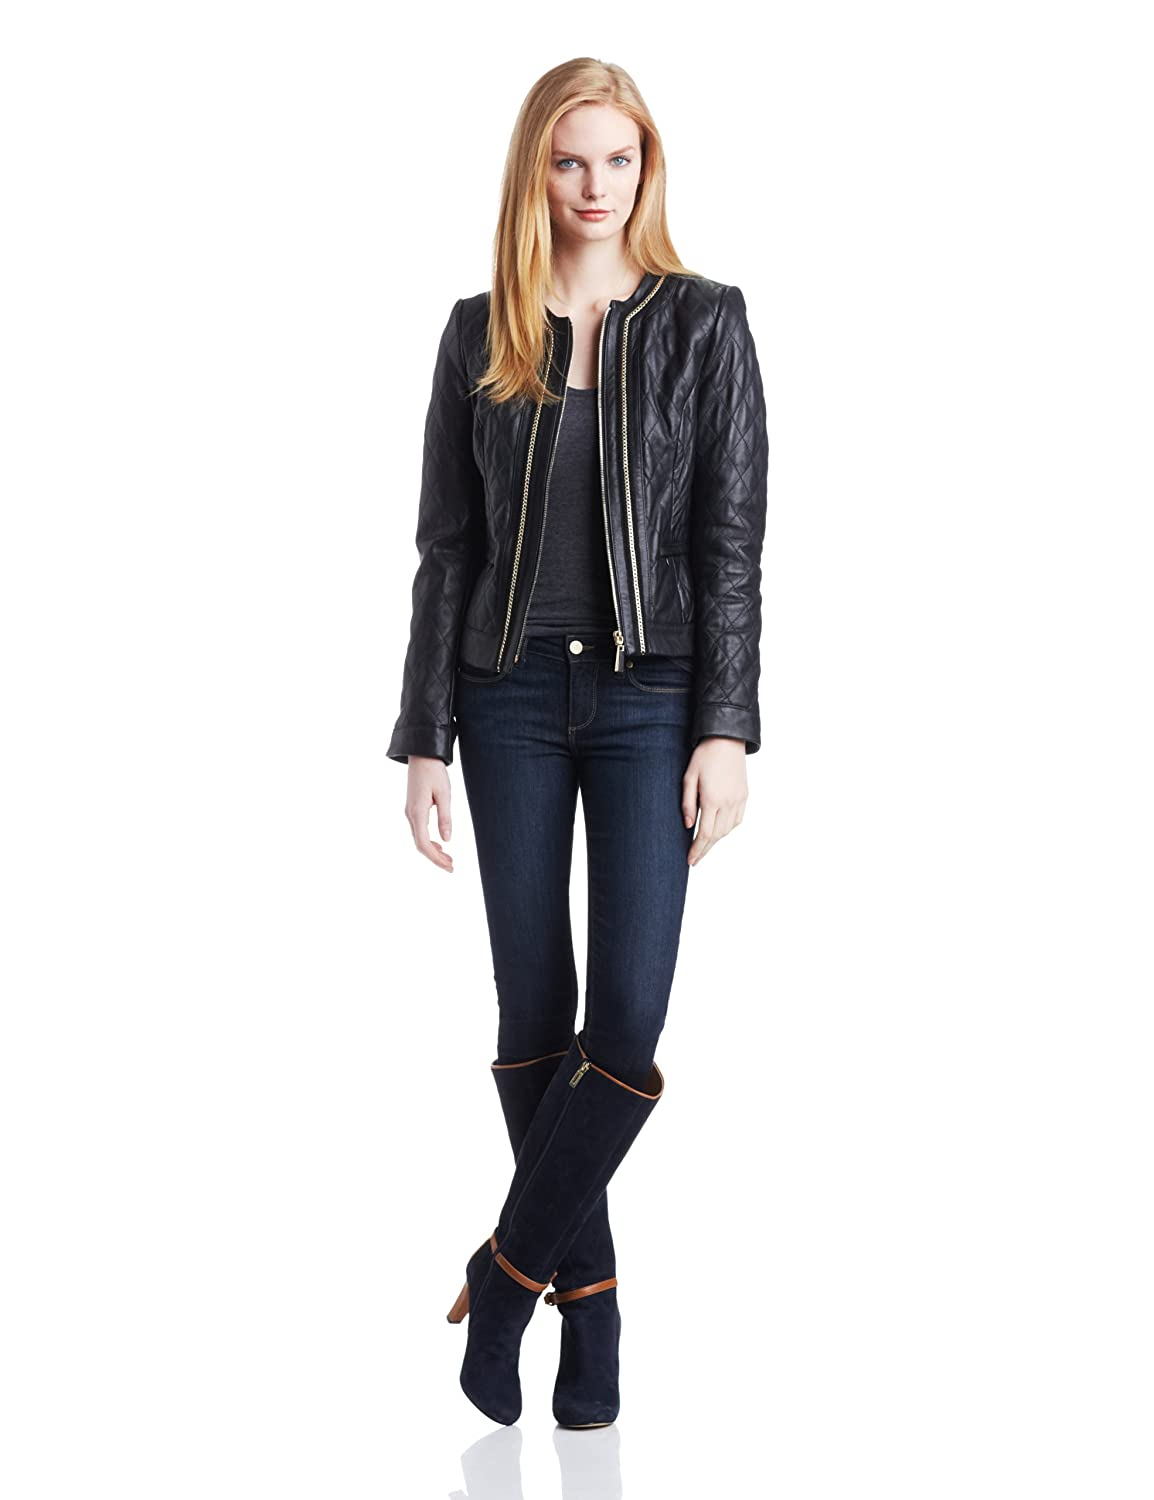 035621fd6 VINCE CAMUTO Women's Quilted Chanel Leather Jacket